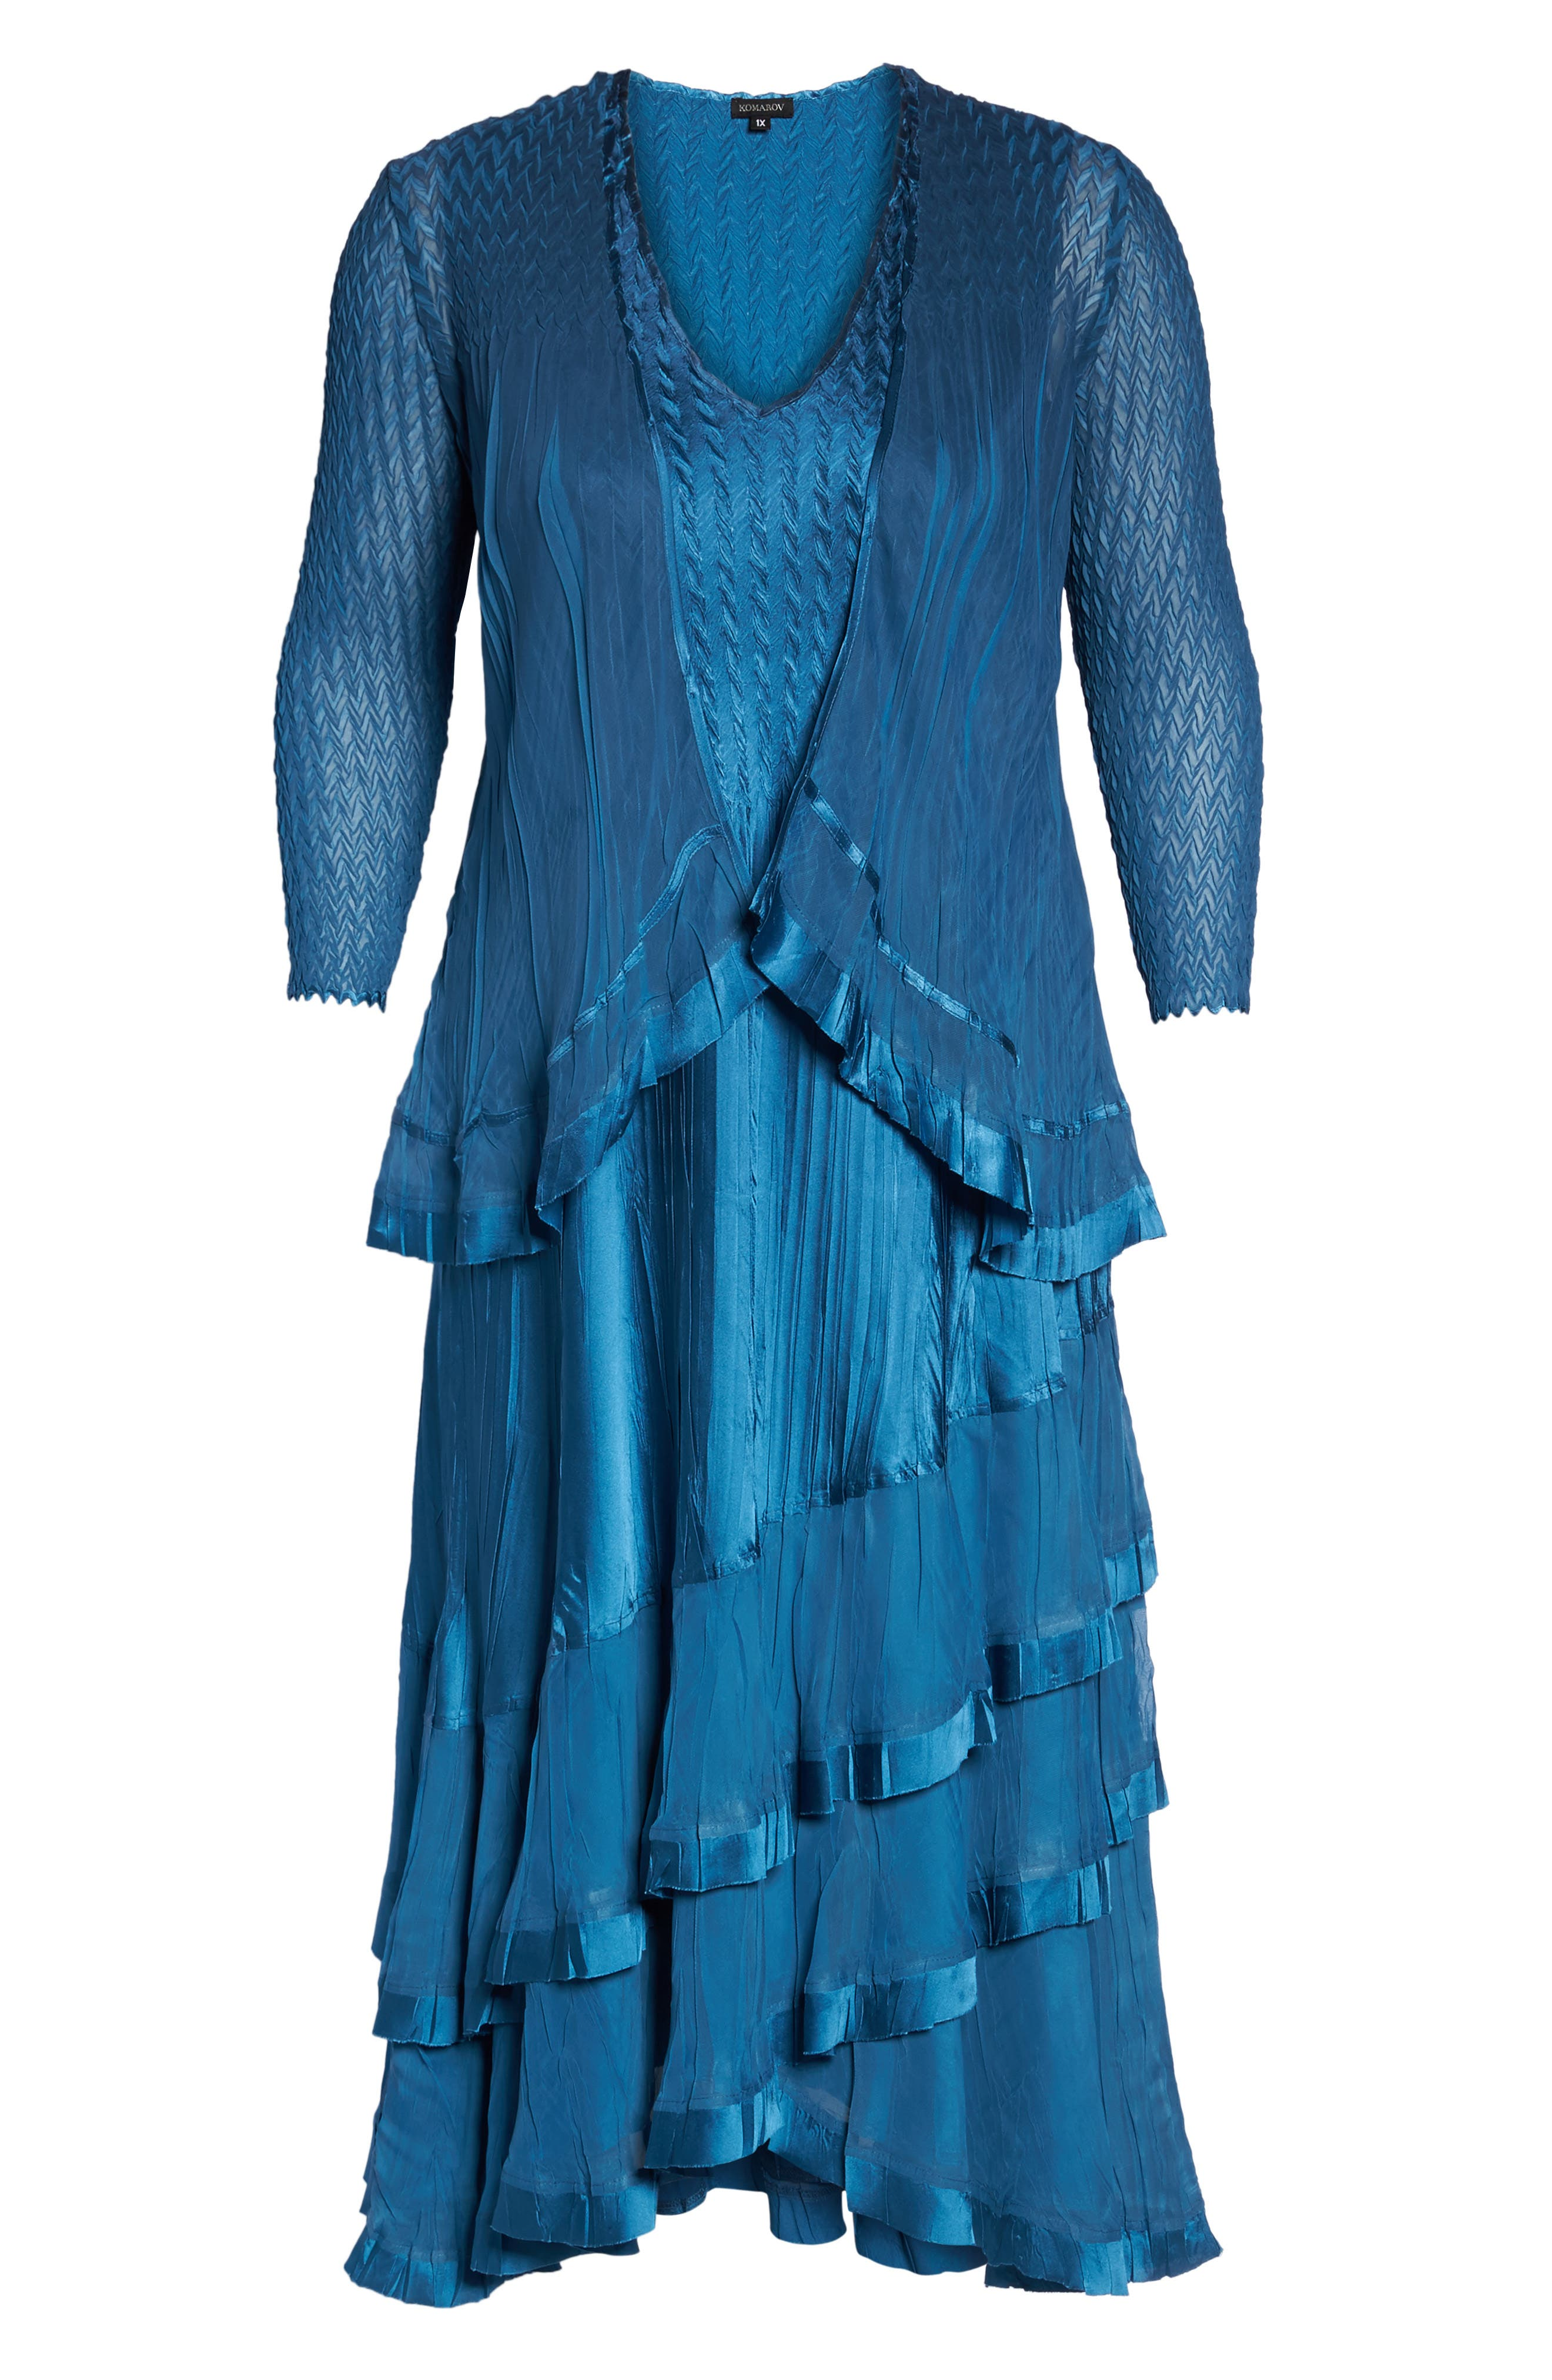 Tiered Dress with Jacket,                             Alternate thumbnail 6, color,